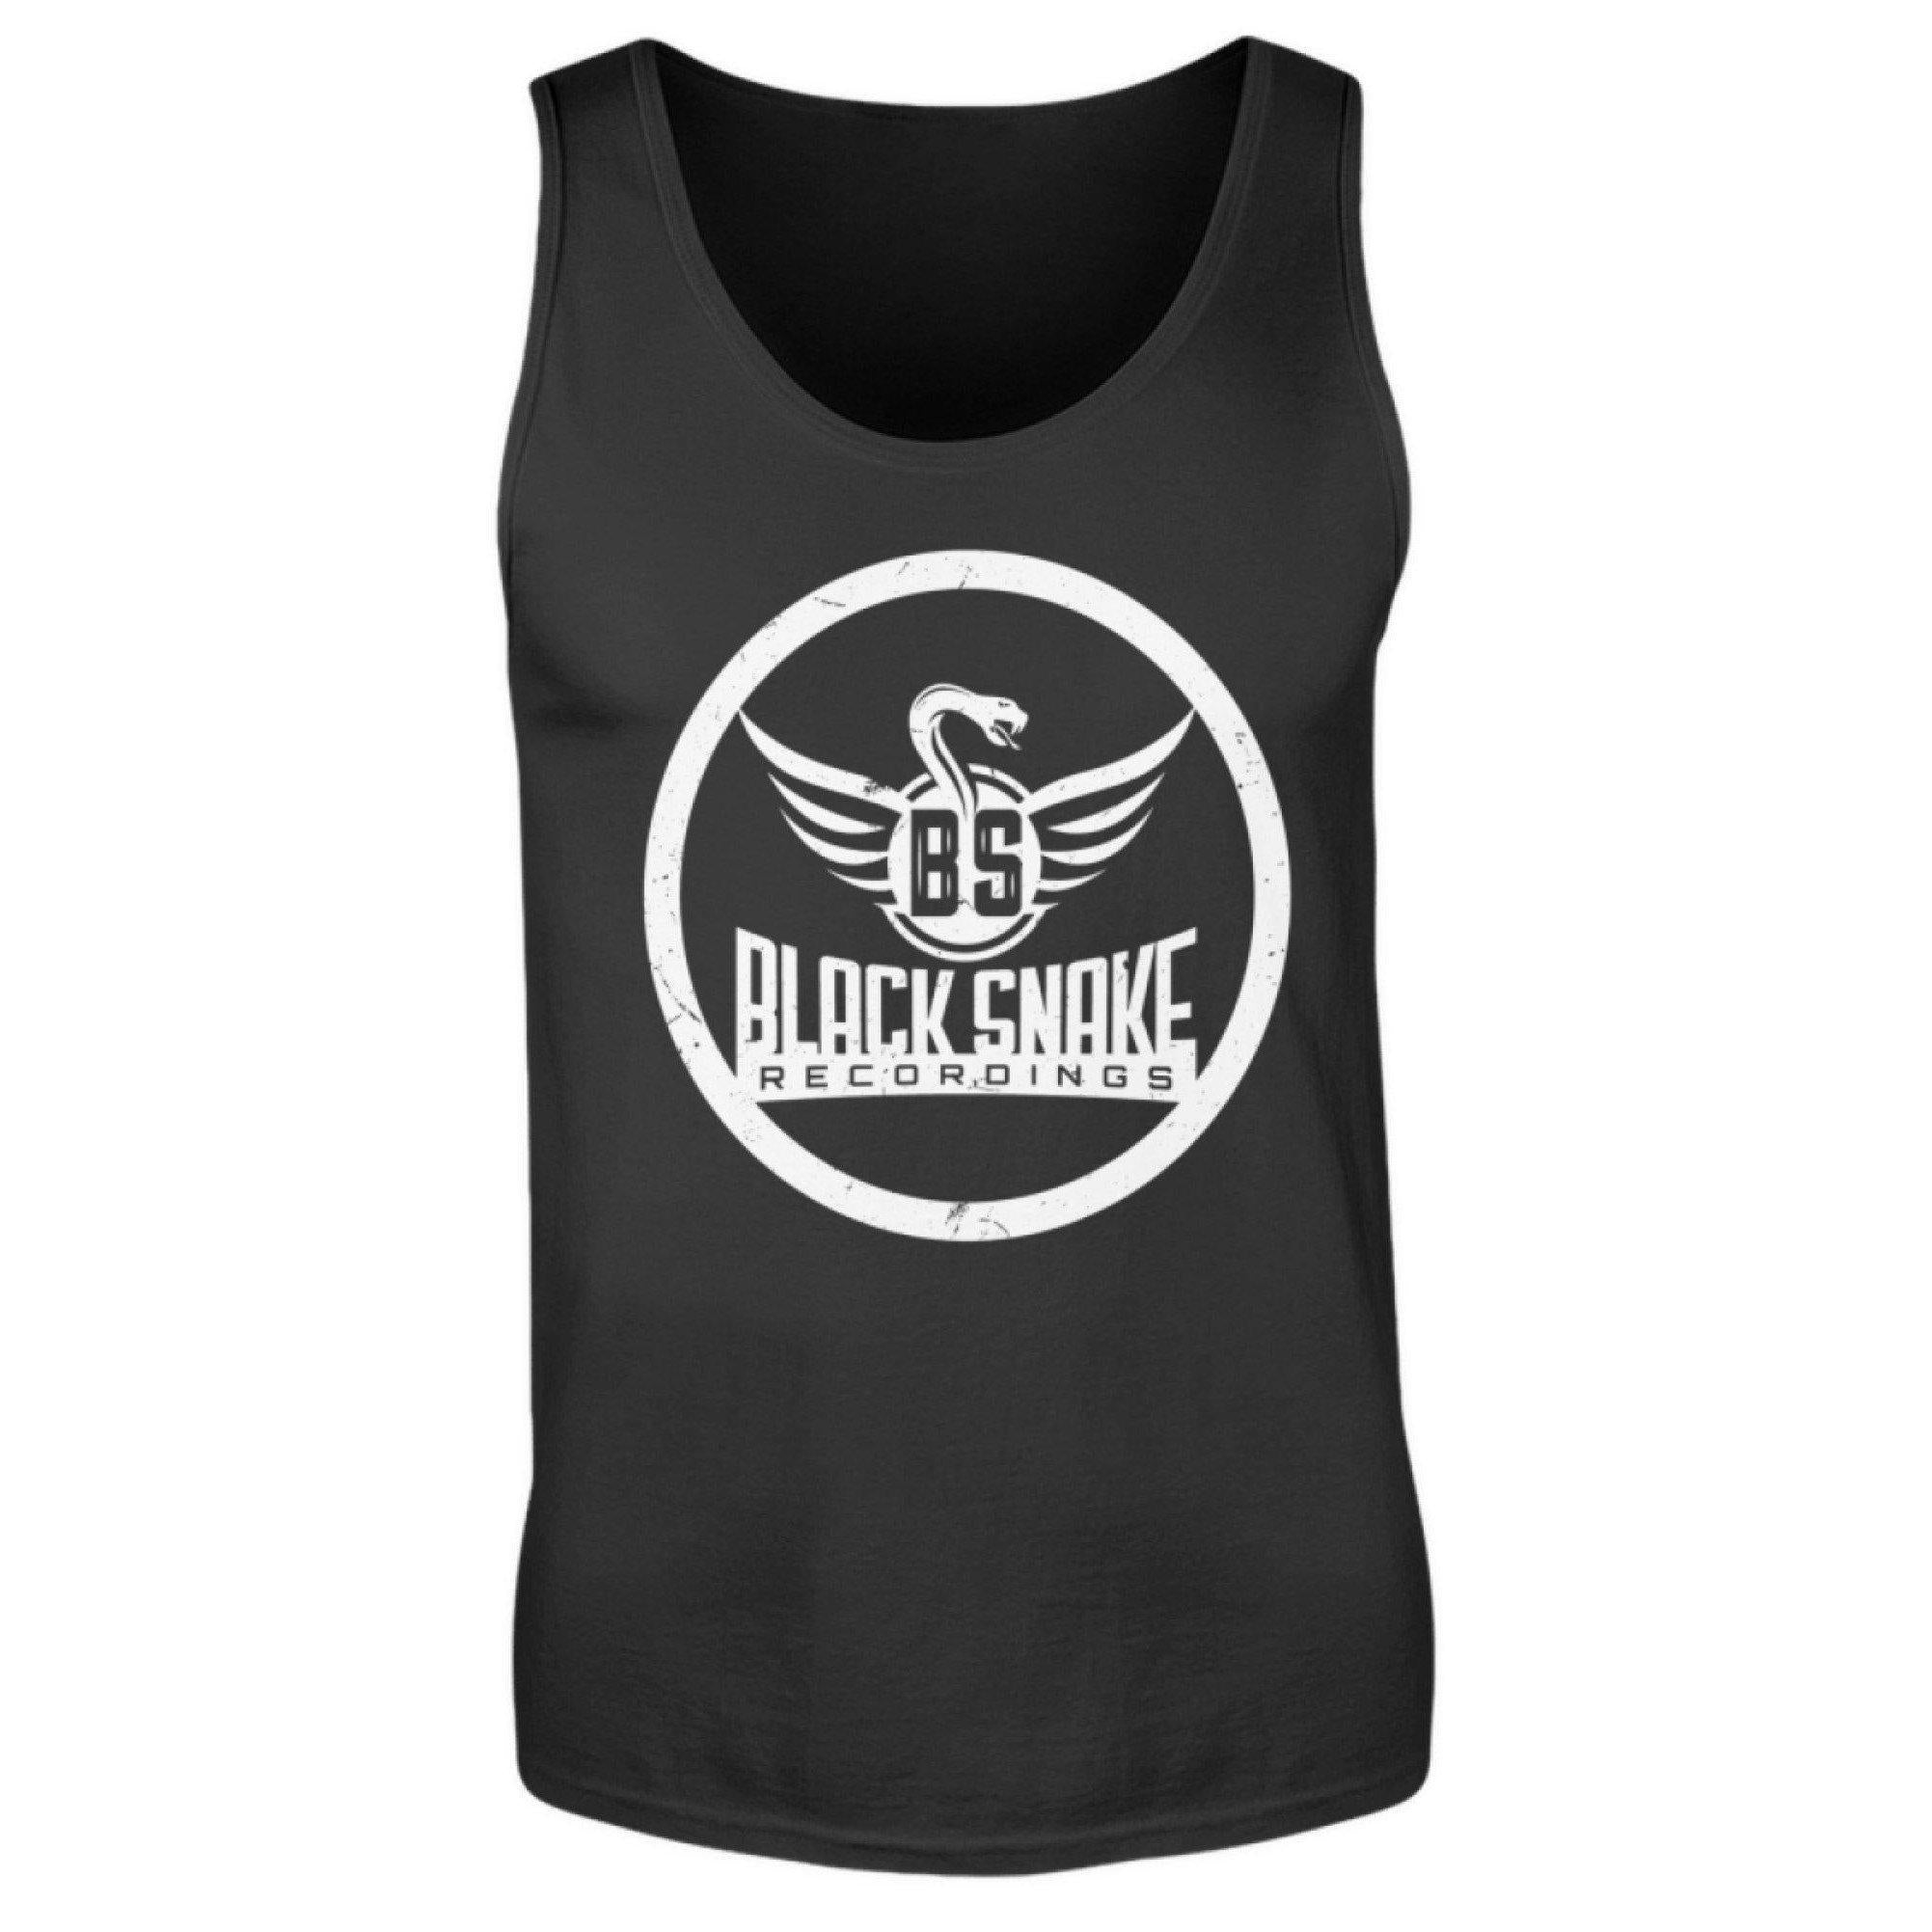 Black Snake Recordings Collection - Men's Tank Top Men's Tank Top Black / S - Rave On!® the club & techno scene shop for cool young fashion streetwear style & fashion outfits + sexy festival 420 stuff